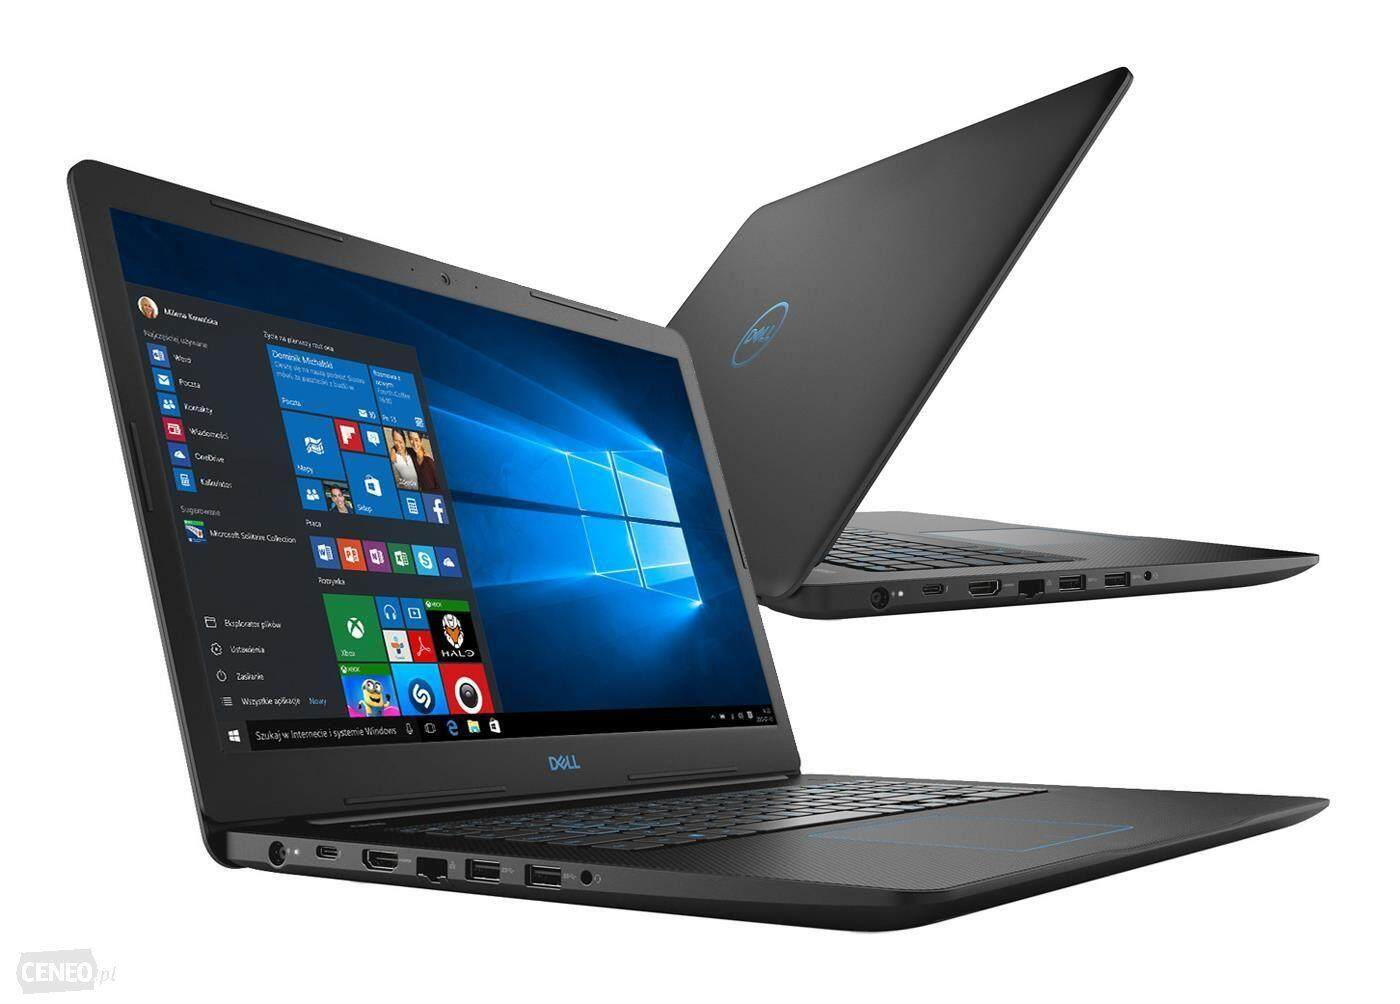 Sell Gaming Laptop Dell Cheapest Best Quality My Store Inspiron 15 7567 I5 7300hq 4gb Ddr4 Gtx 1050 Ti Win10 Black Myr 3010 G3